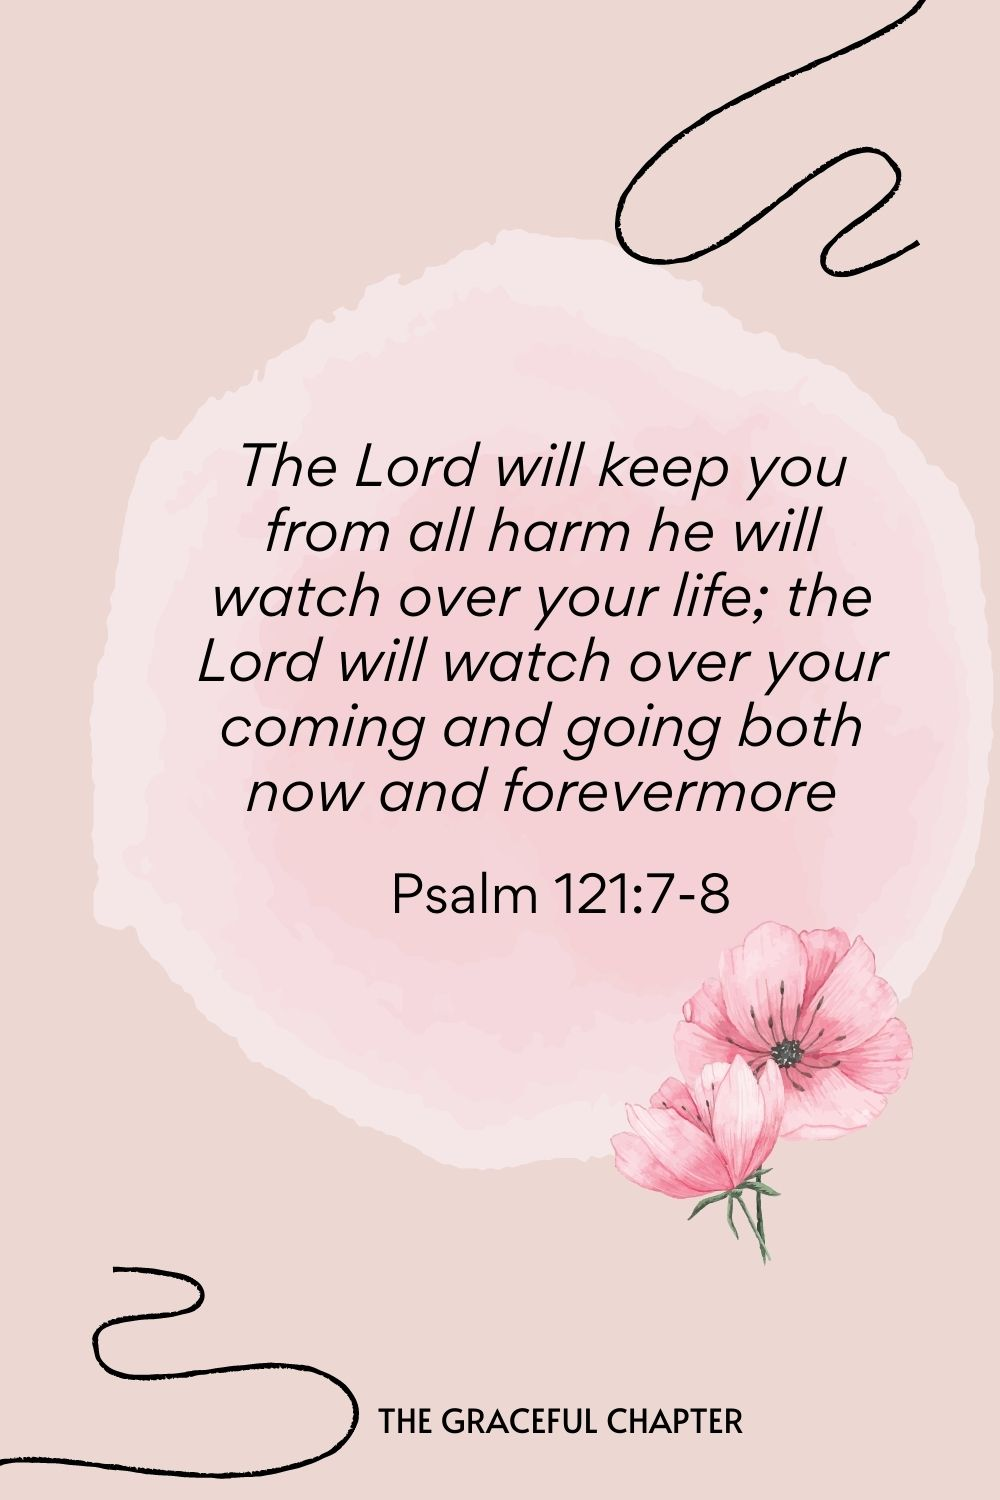 The Lord will keep you from all harm he will watch over your life; the Lord will watch over your coming and going both now and forevermore  Psalm 121:7-8